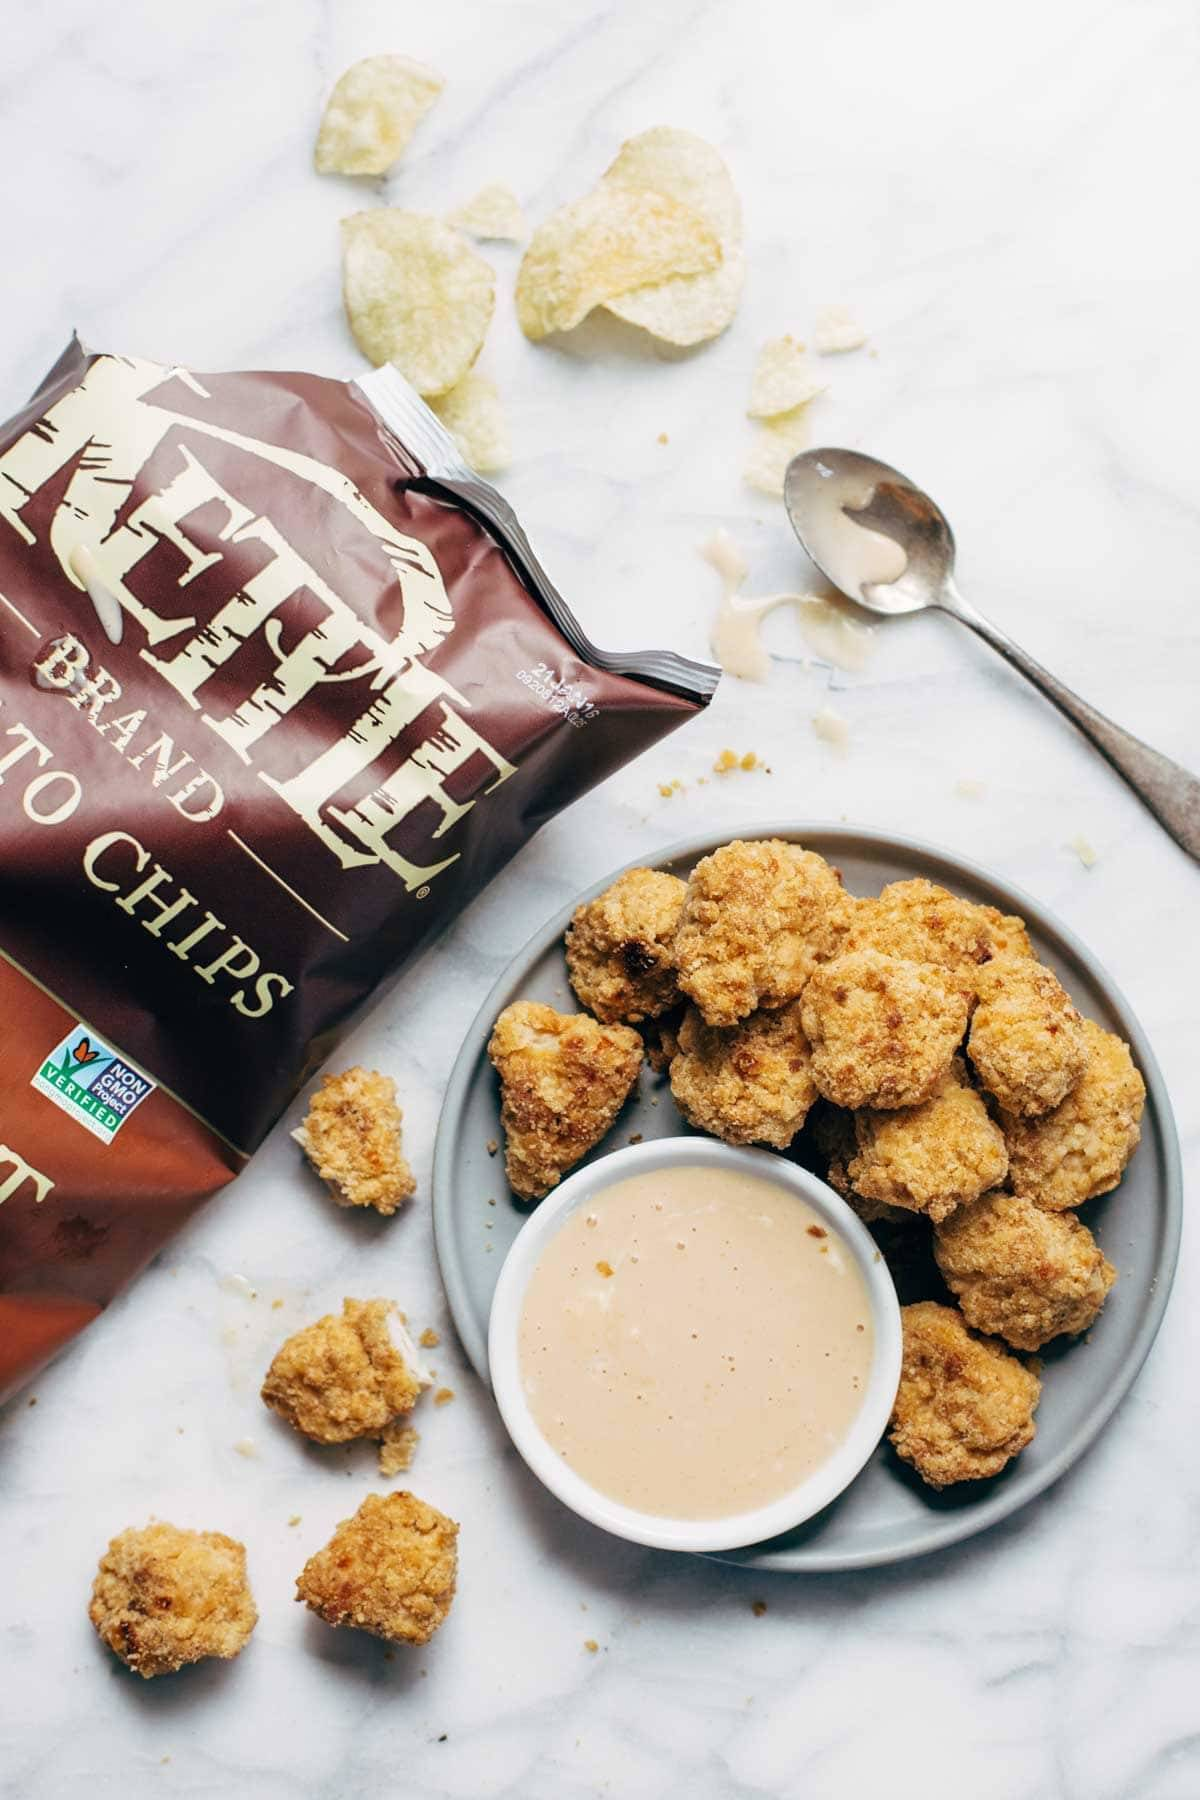 Everyone LOVES these! Baked popcorn chicken that tastes fried! Easy recipe, ready in 30 minutes. SO yummy and fun to share! | pinchofyum.com